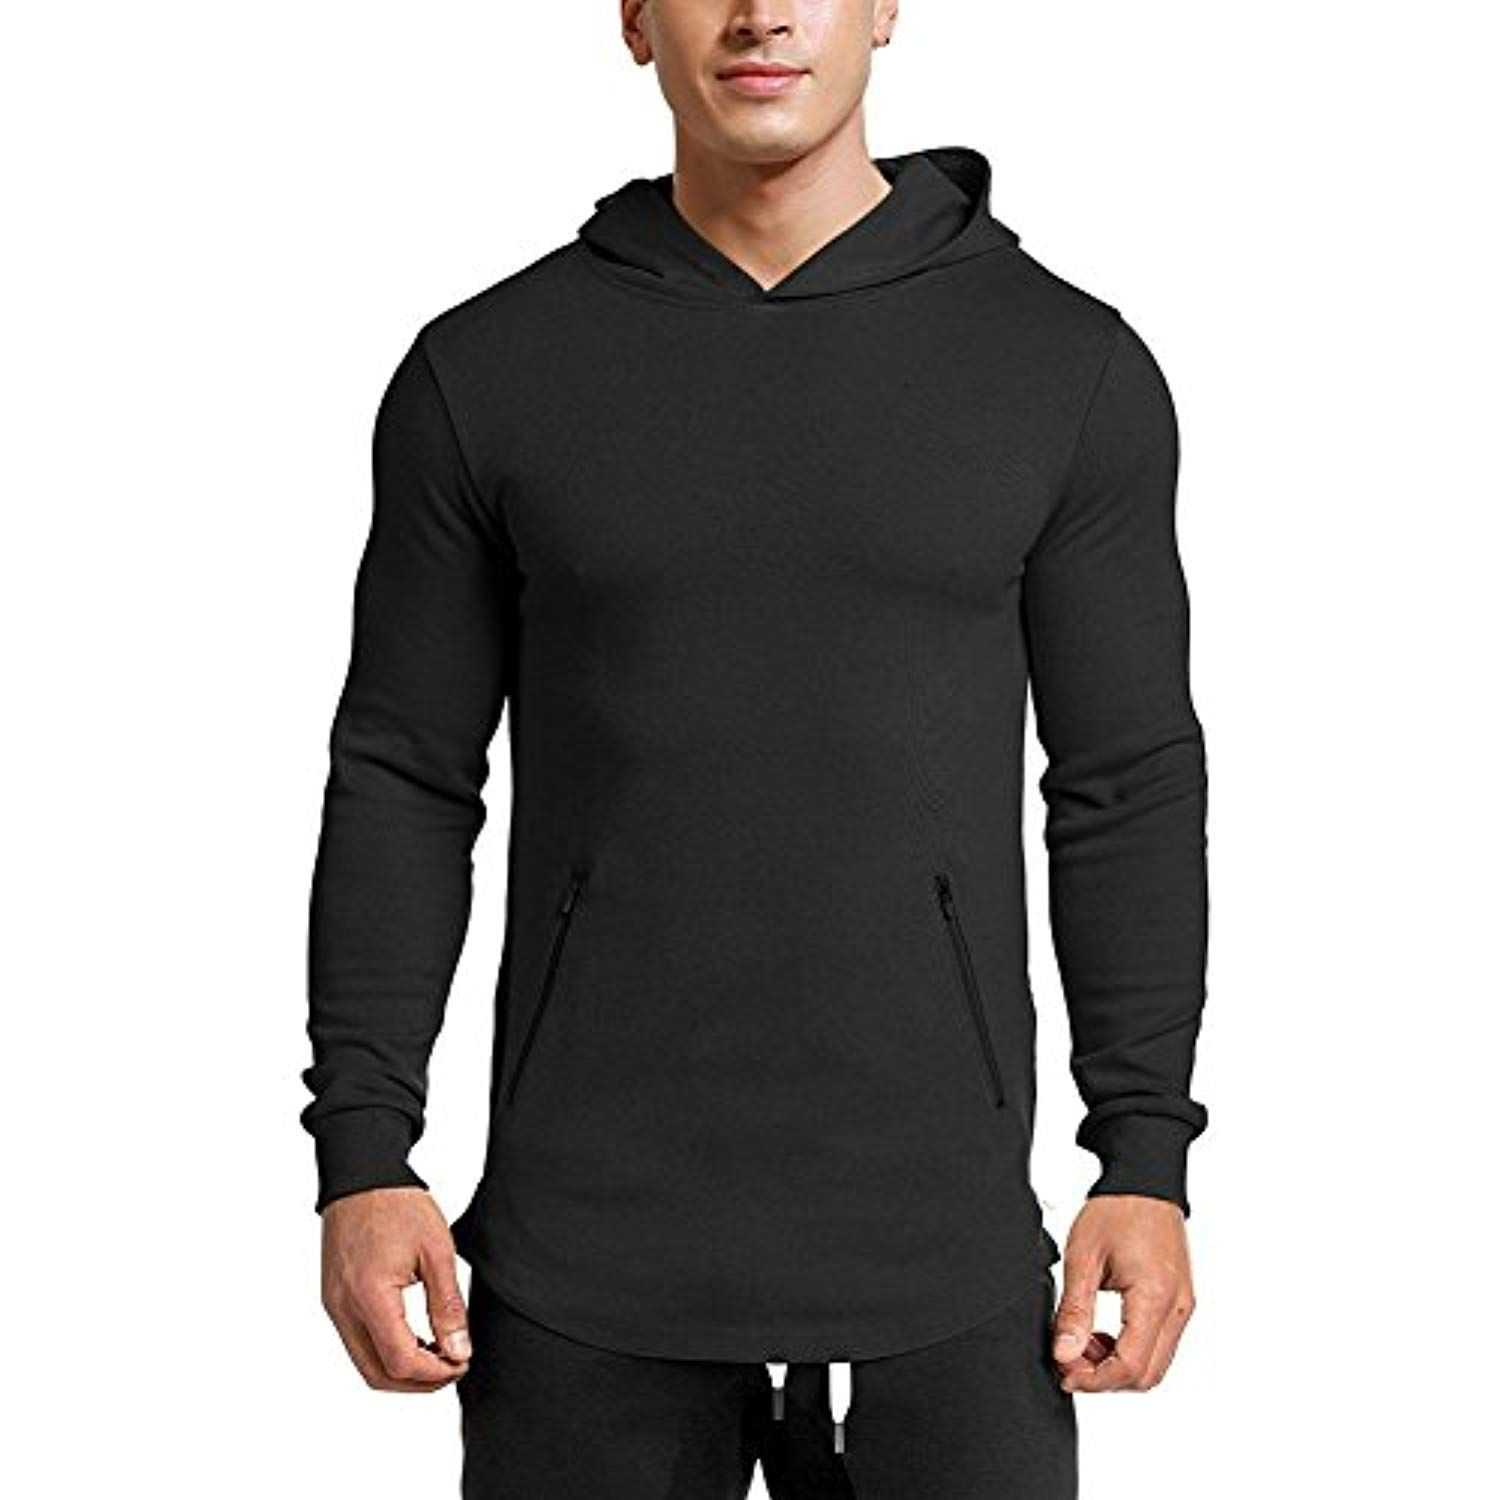 e1fc63f63 LANGCHEN Men s Gym Workout Hoodie Training Sports Pullover with Zipper  Pockets Hoody -- Click image for more details. (This is an affiliate link)    ...